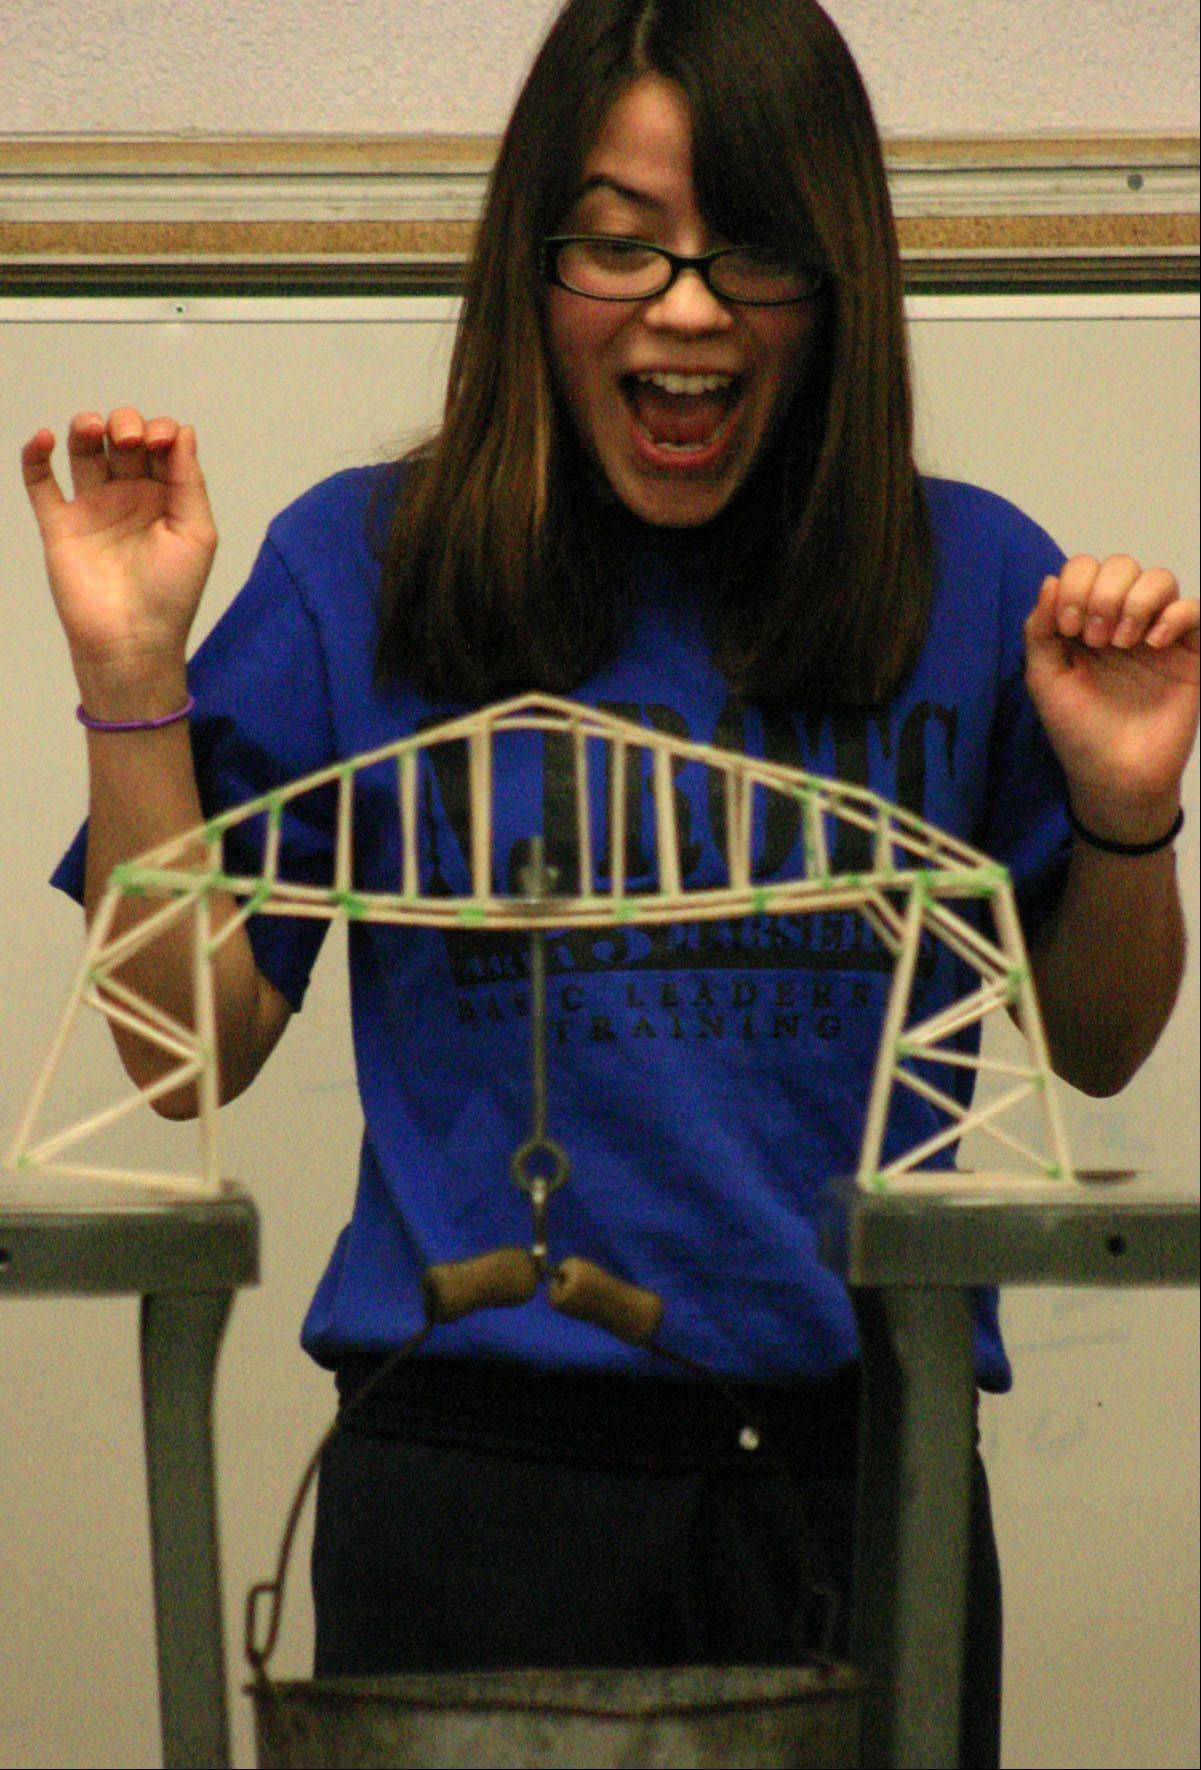 Rocio Sanchez celebrates after adding weight during the recent Mooseheart Bridge Breaking Contest. Sanchez´s bridge broke shortly after, having withstood 9 pounds, and earning the senior second place.